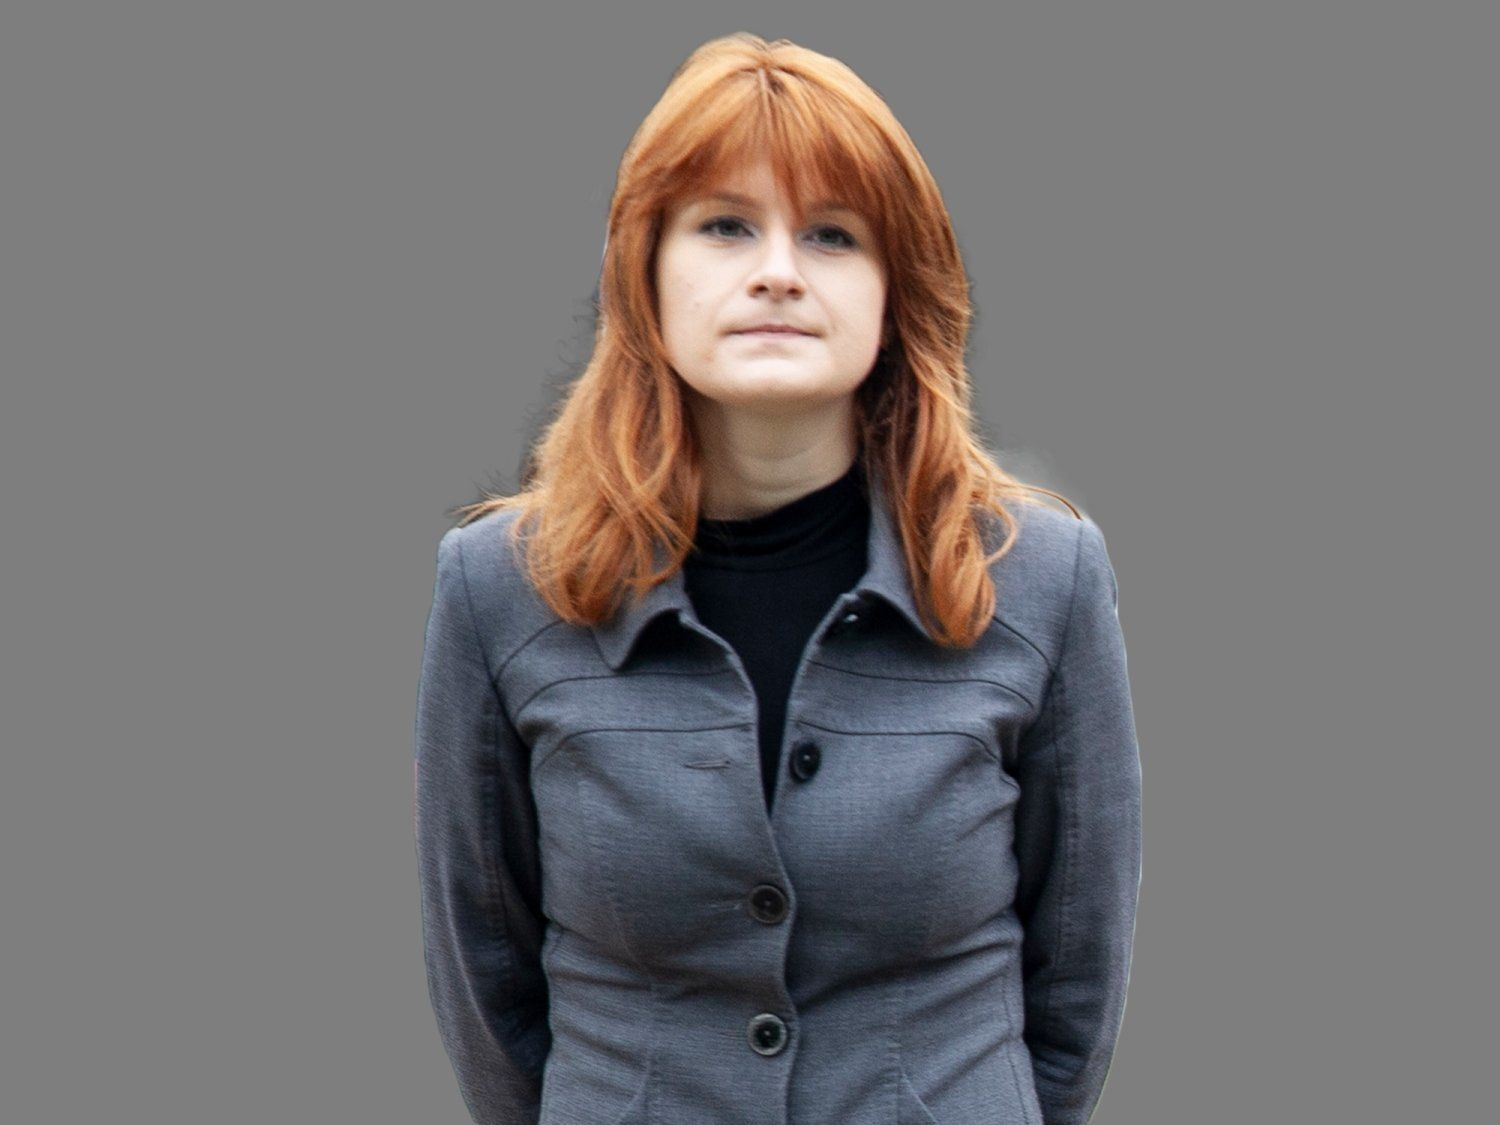 Maria Butina, woman charged with being a Russian agent who was arrested in the US, graphic element on gray